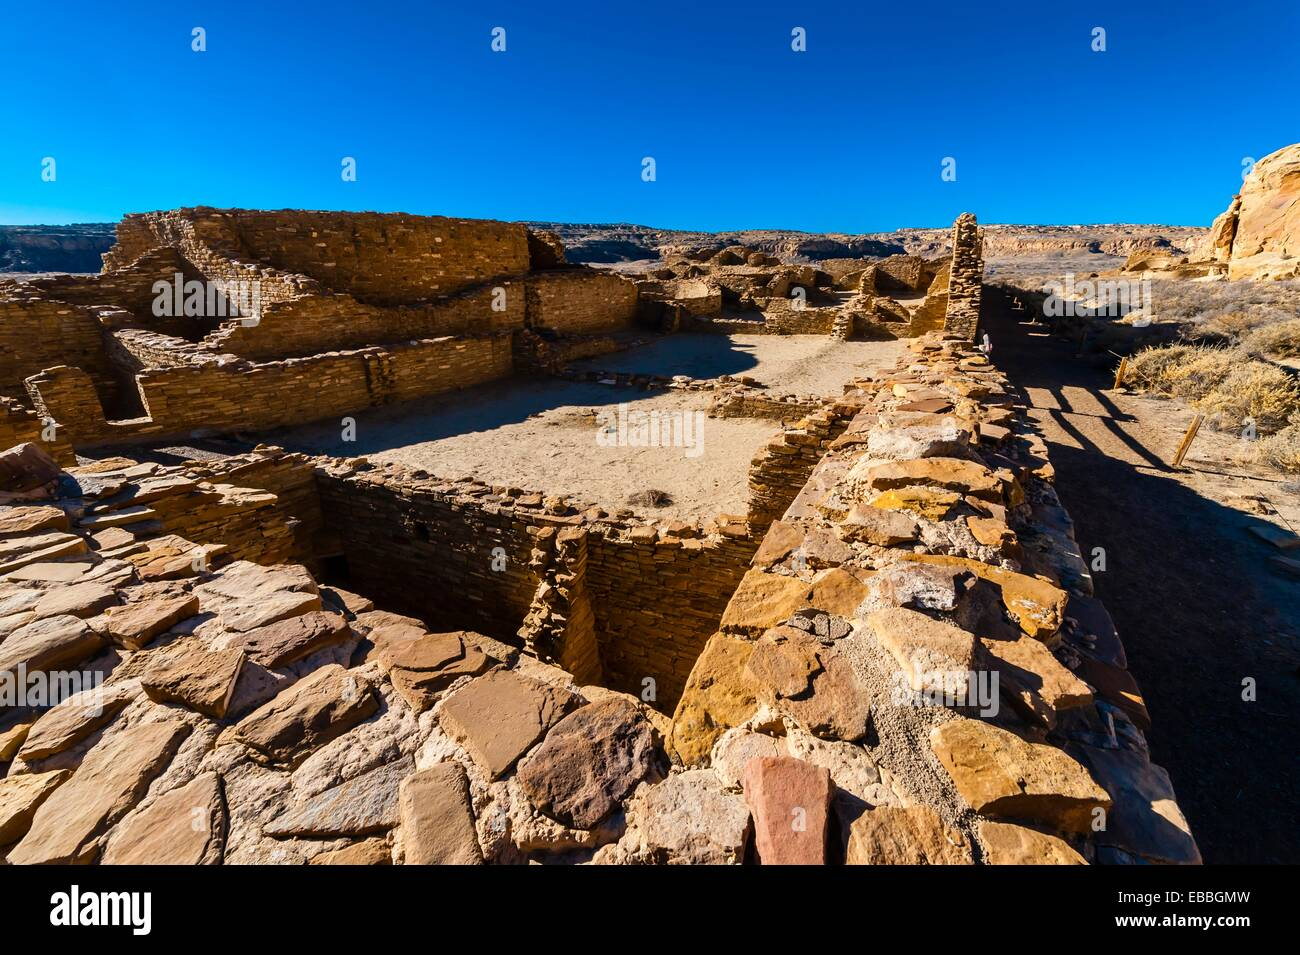 Chetro Ketl begun around 1020 and had an estimated 500 rooms and 16 kivas, Chaco Culture National Historical Park Stock Photo